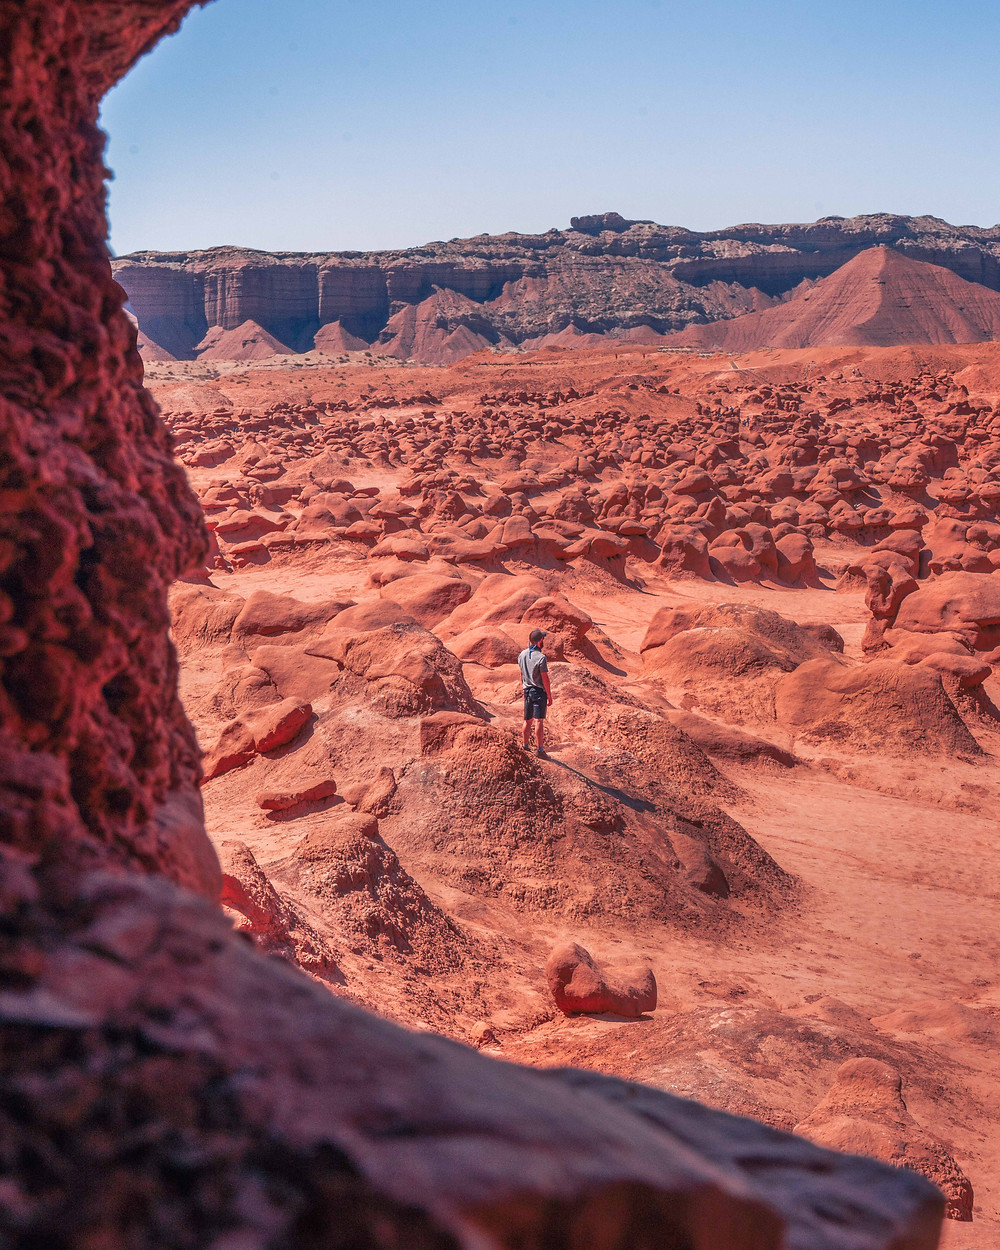 hiker in the middle of the red rock structures in Utah